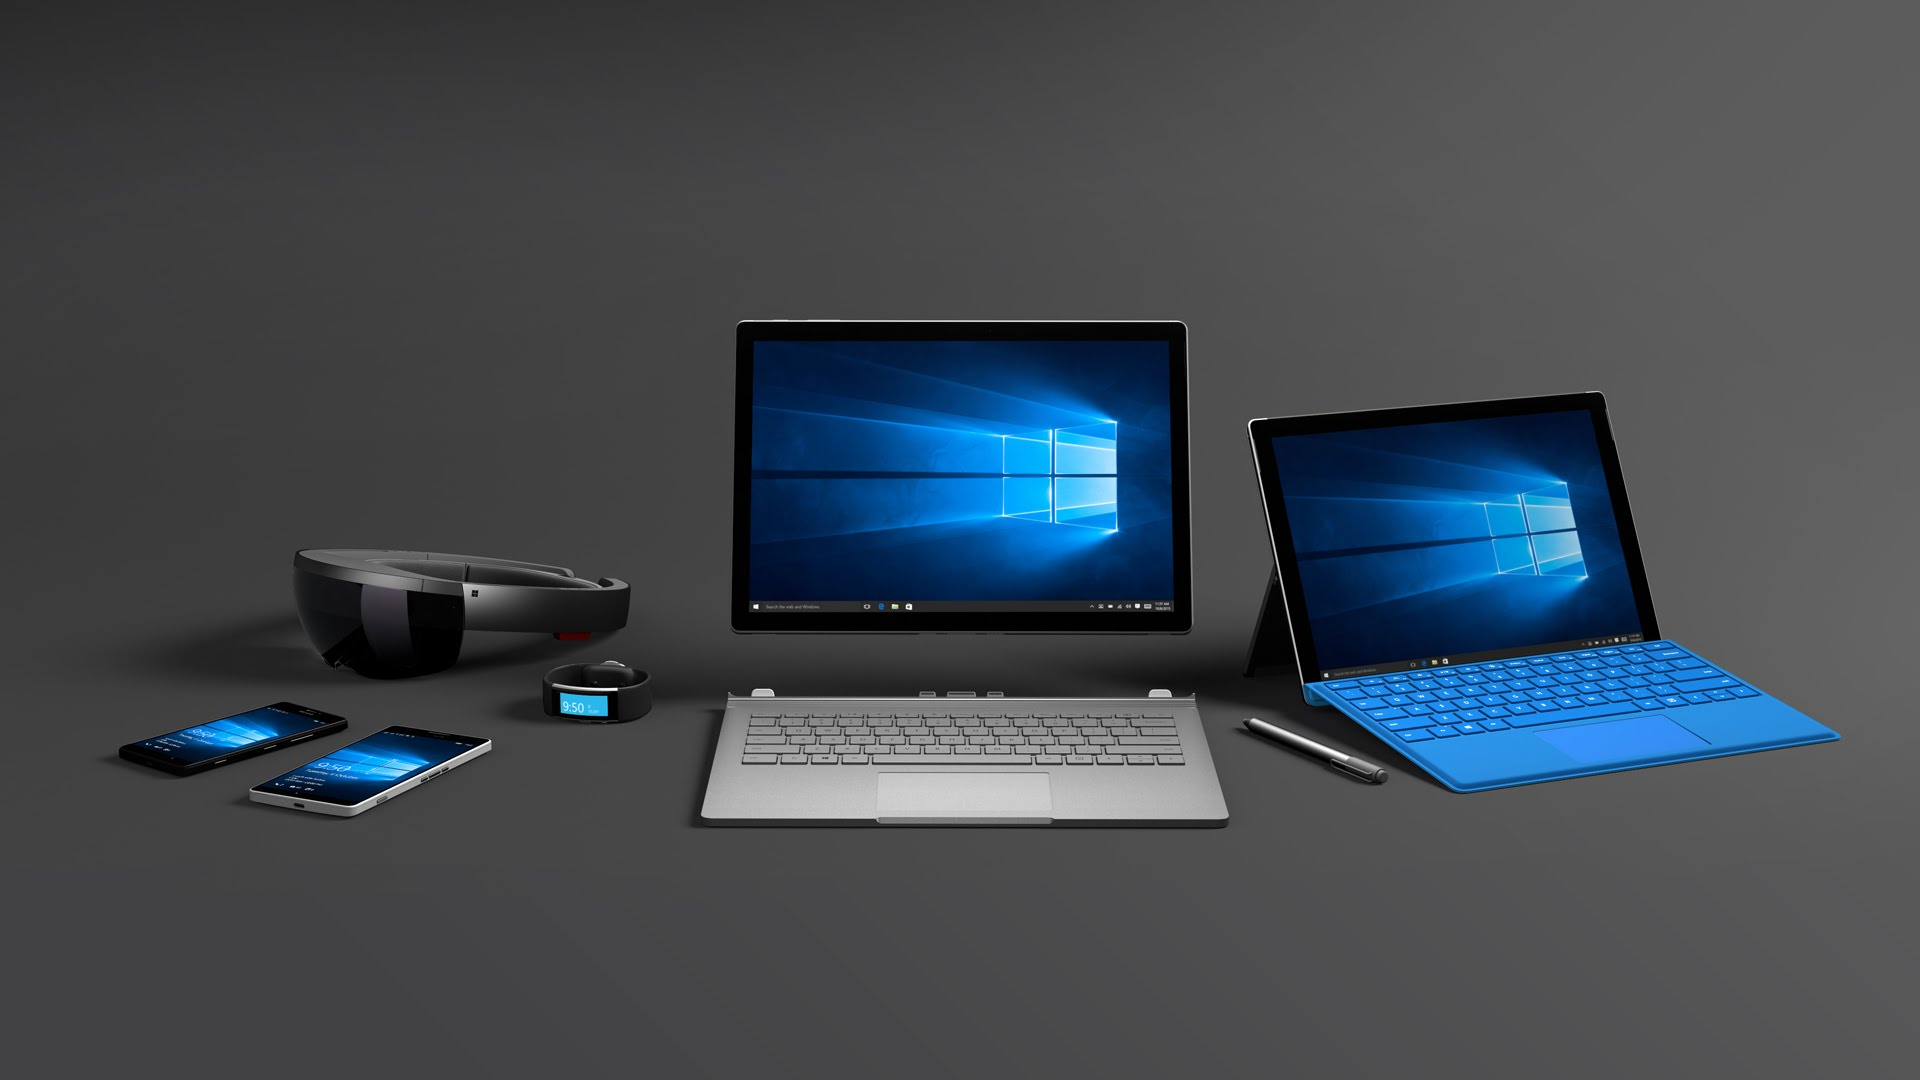 Microsoft presenta i nuovi Lumia 950 e 950 XL, Surface Pro 4, Surface Book e Band 2 [VIDEO]